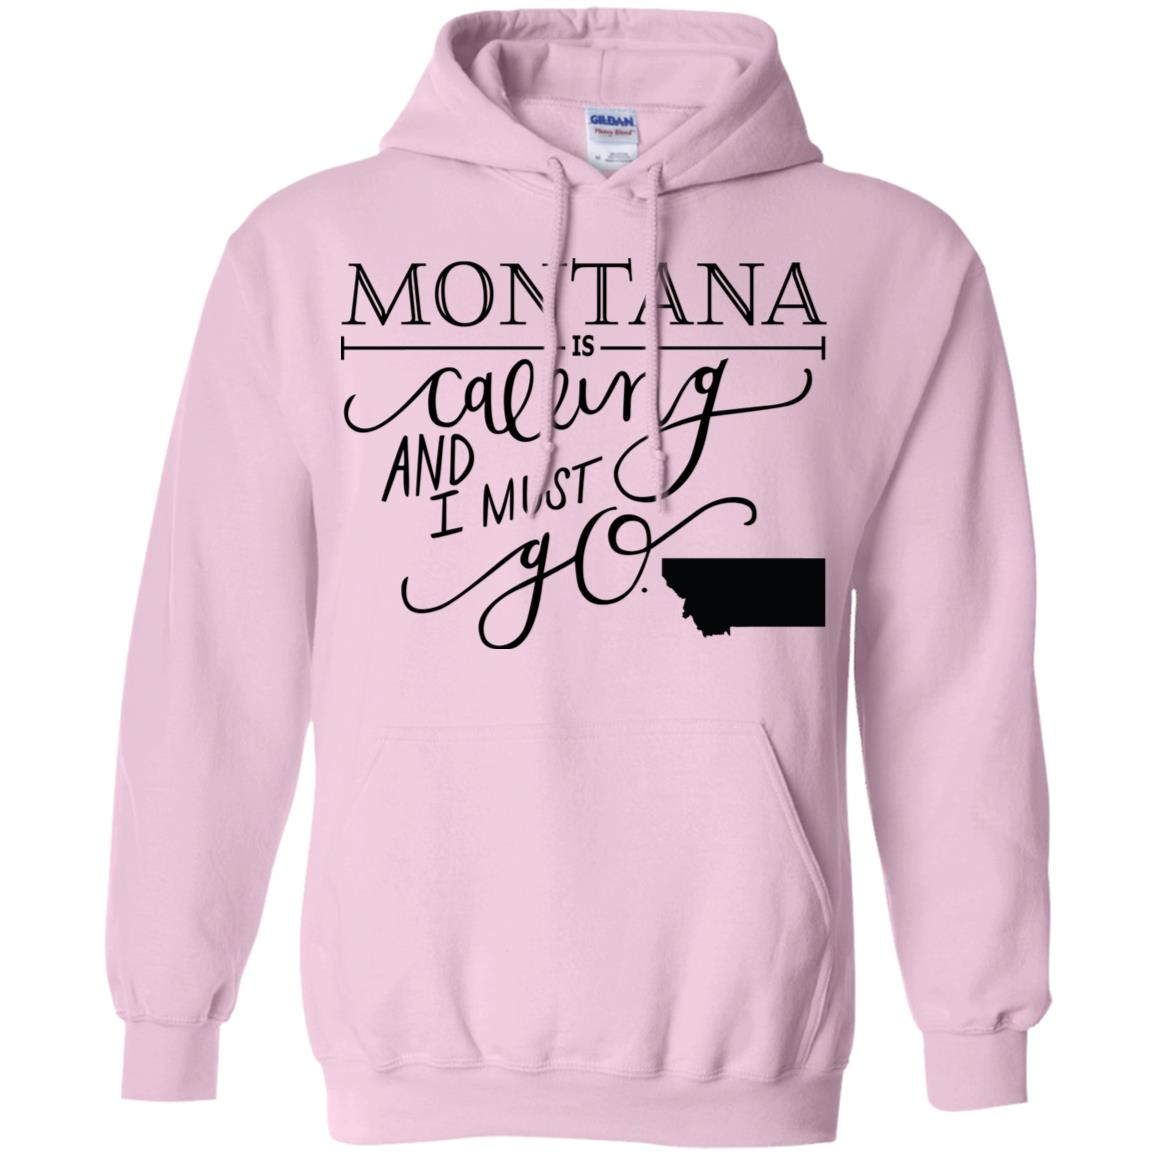 MONTANA IS CALLING I MUST GO